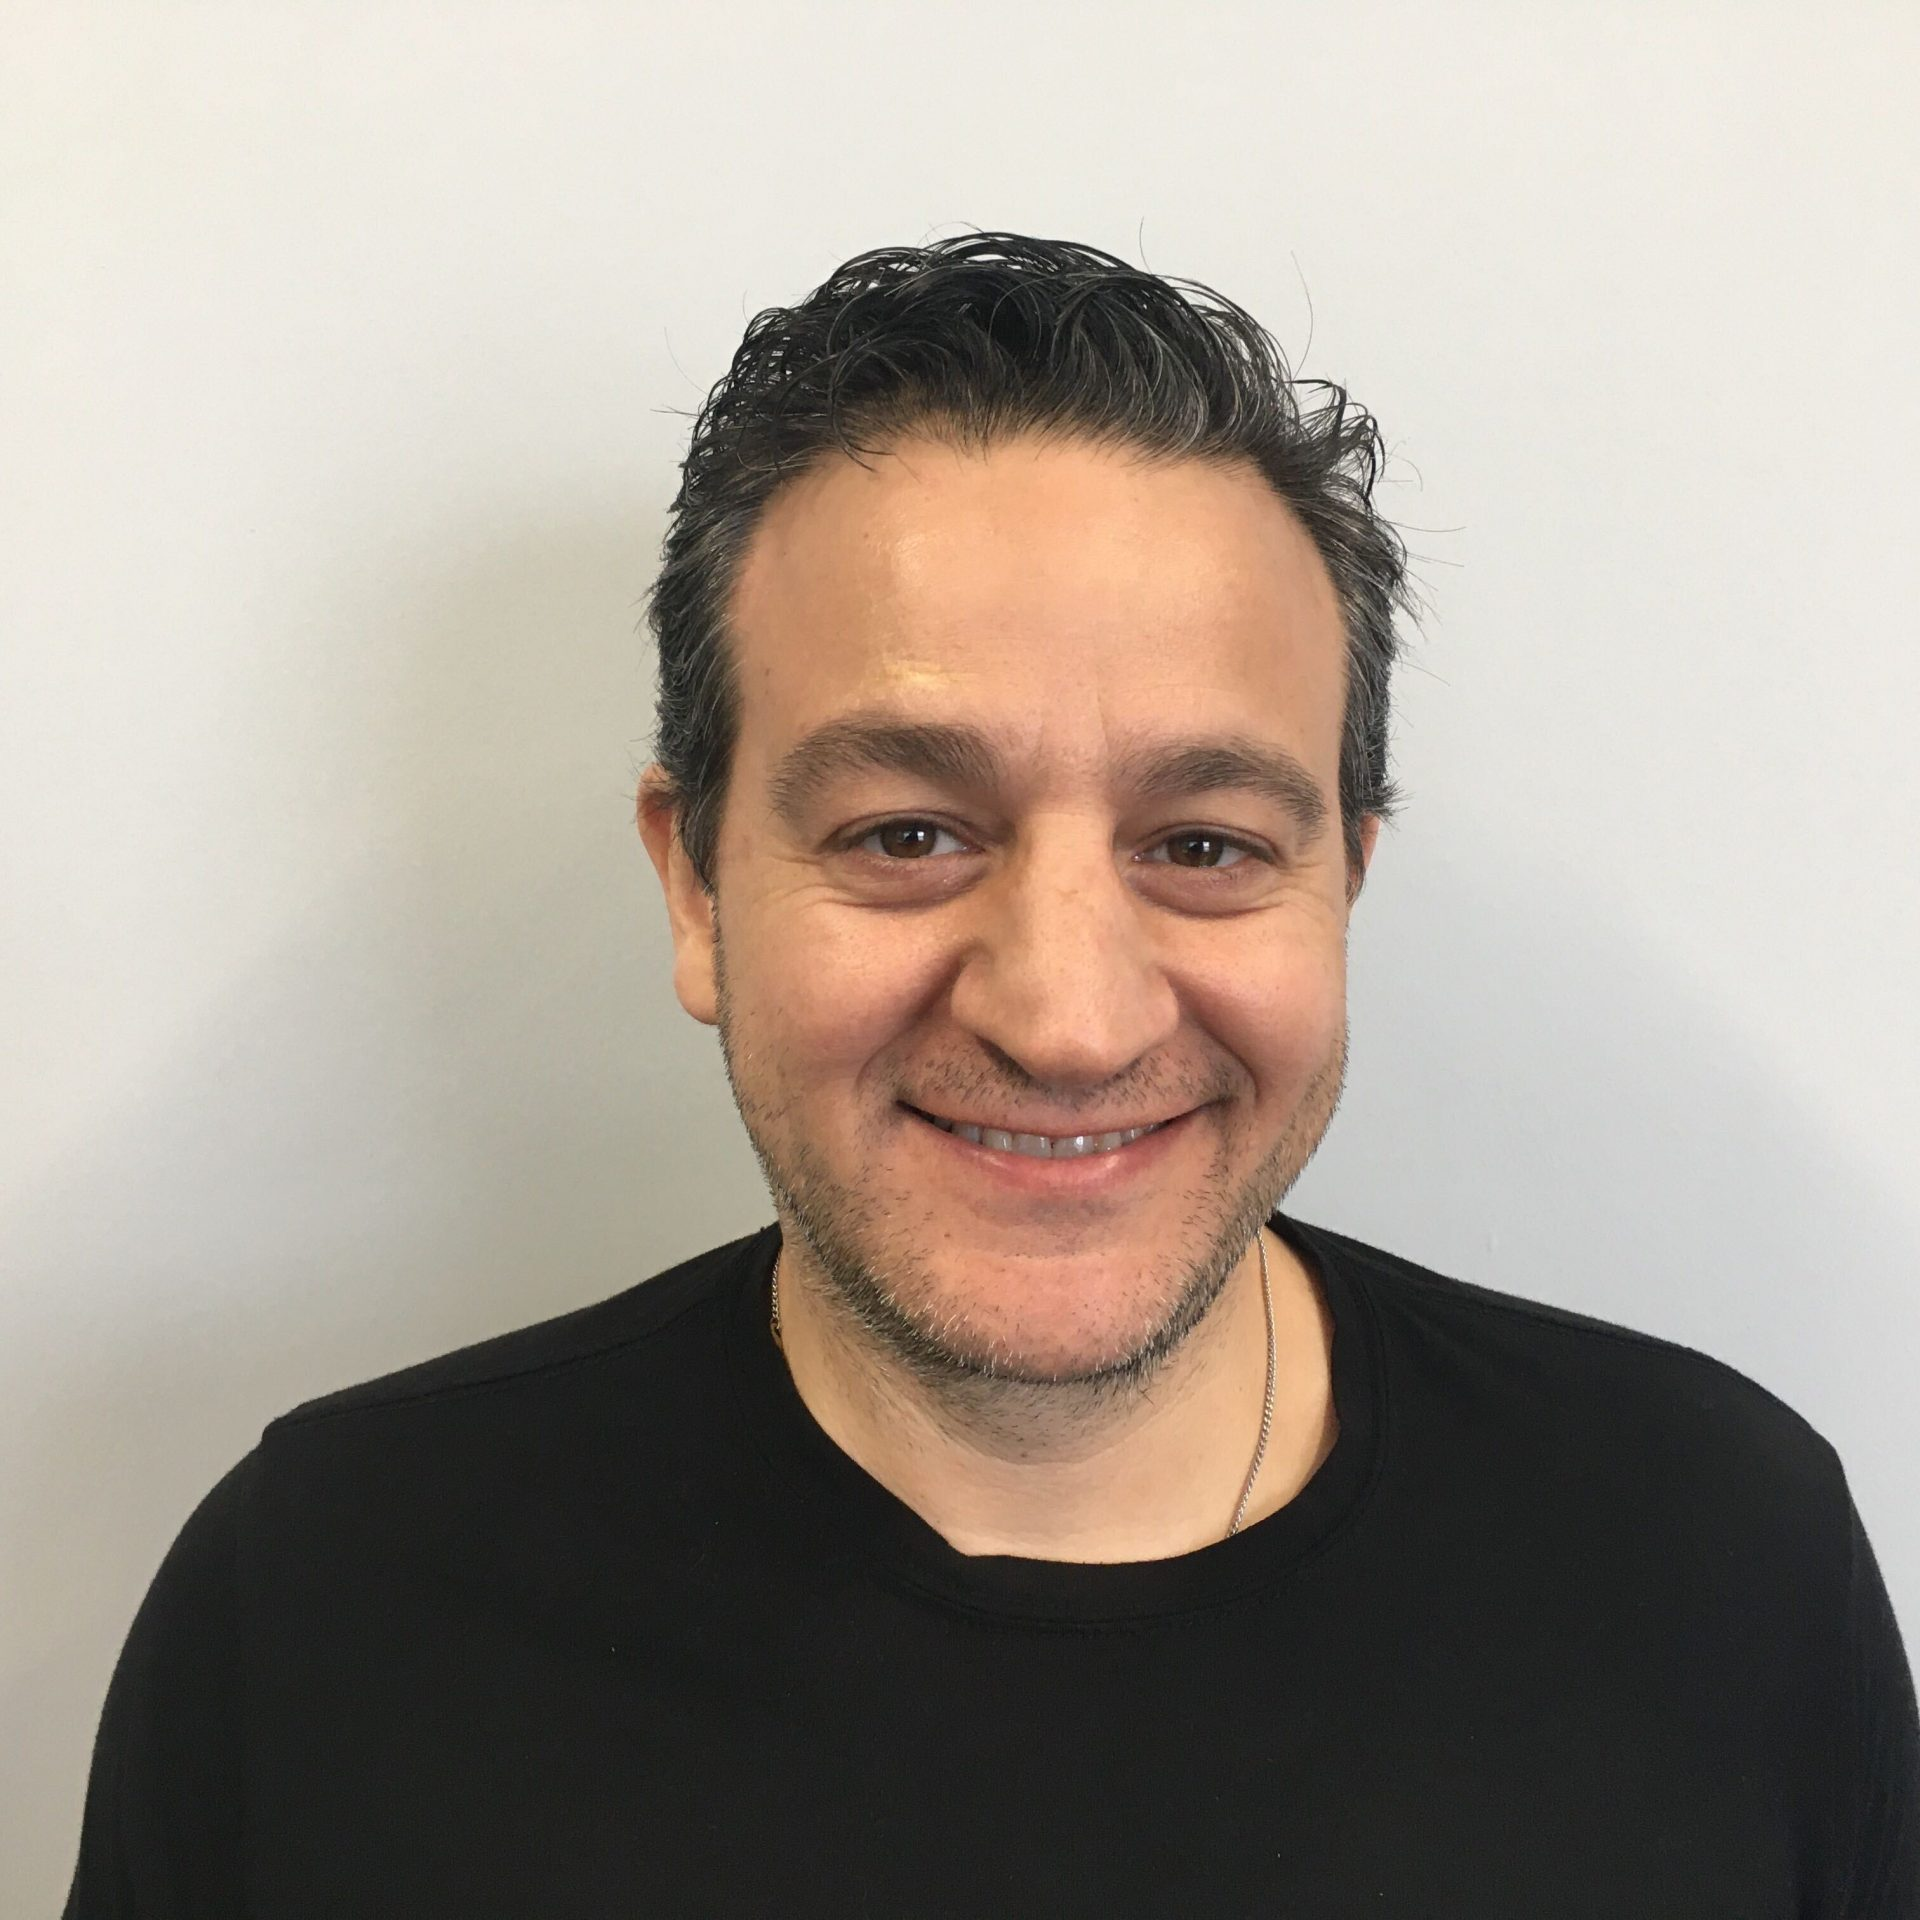 Anthony Montore, Director of PPE Sales